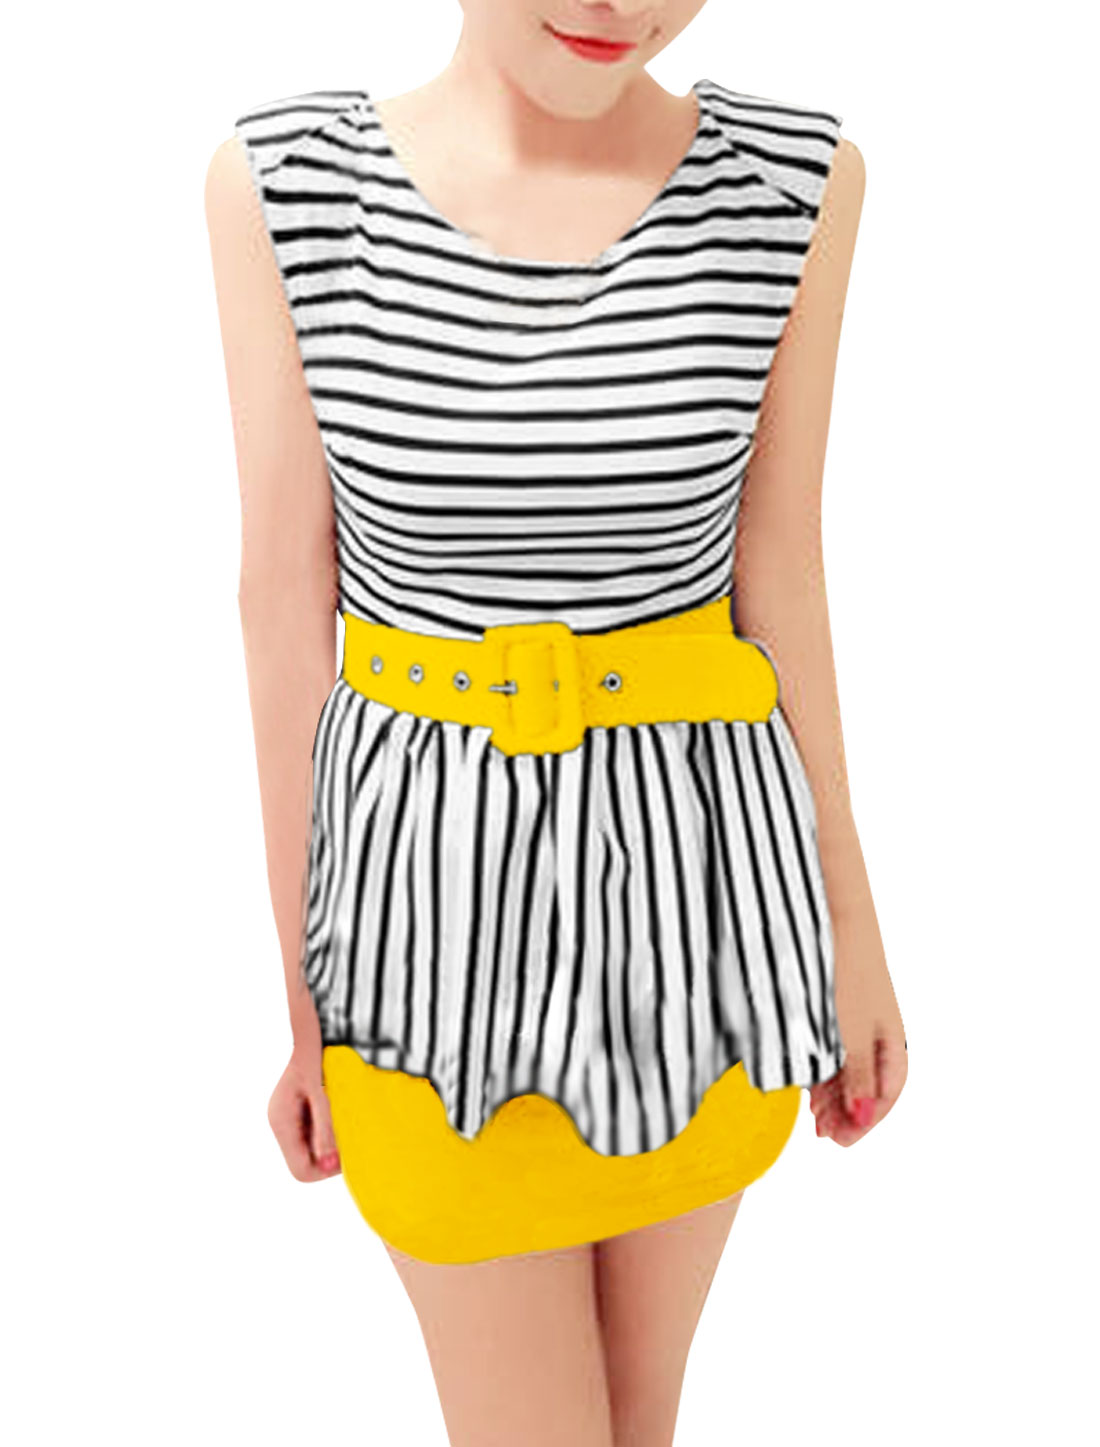 Ladies Round Neck Padded Shoulder Stripes Pattern Yellow Peplum Mini Dress XS